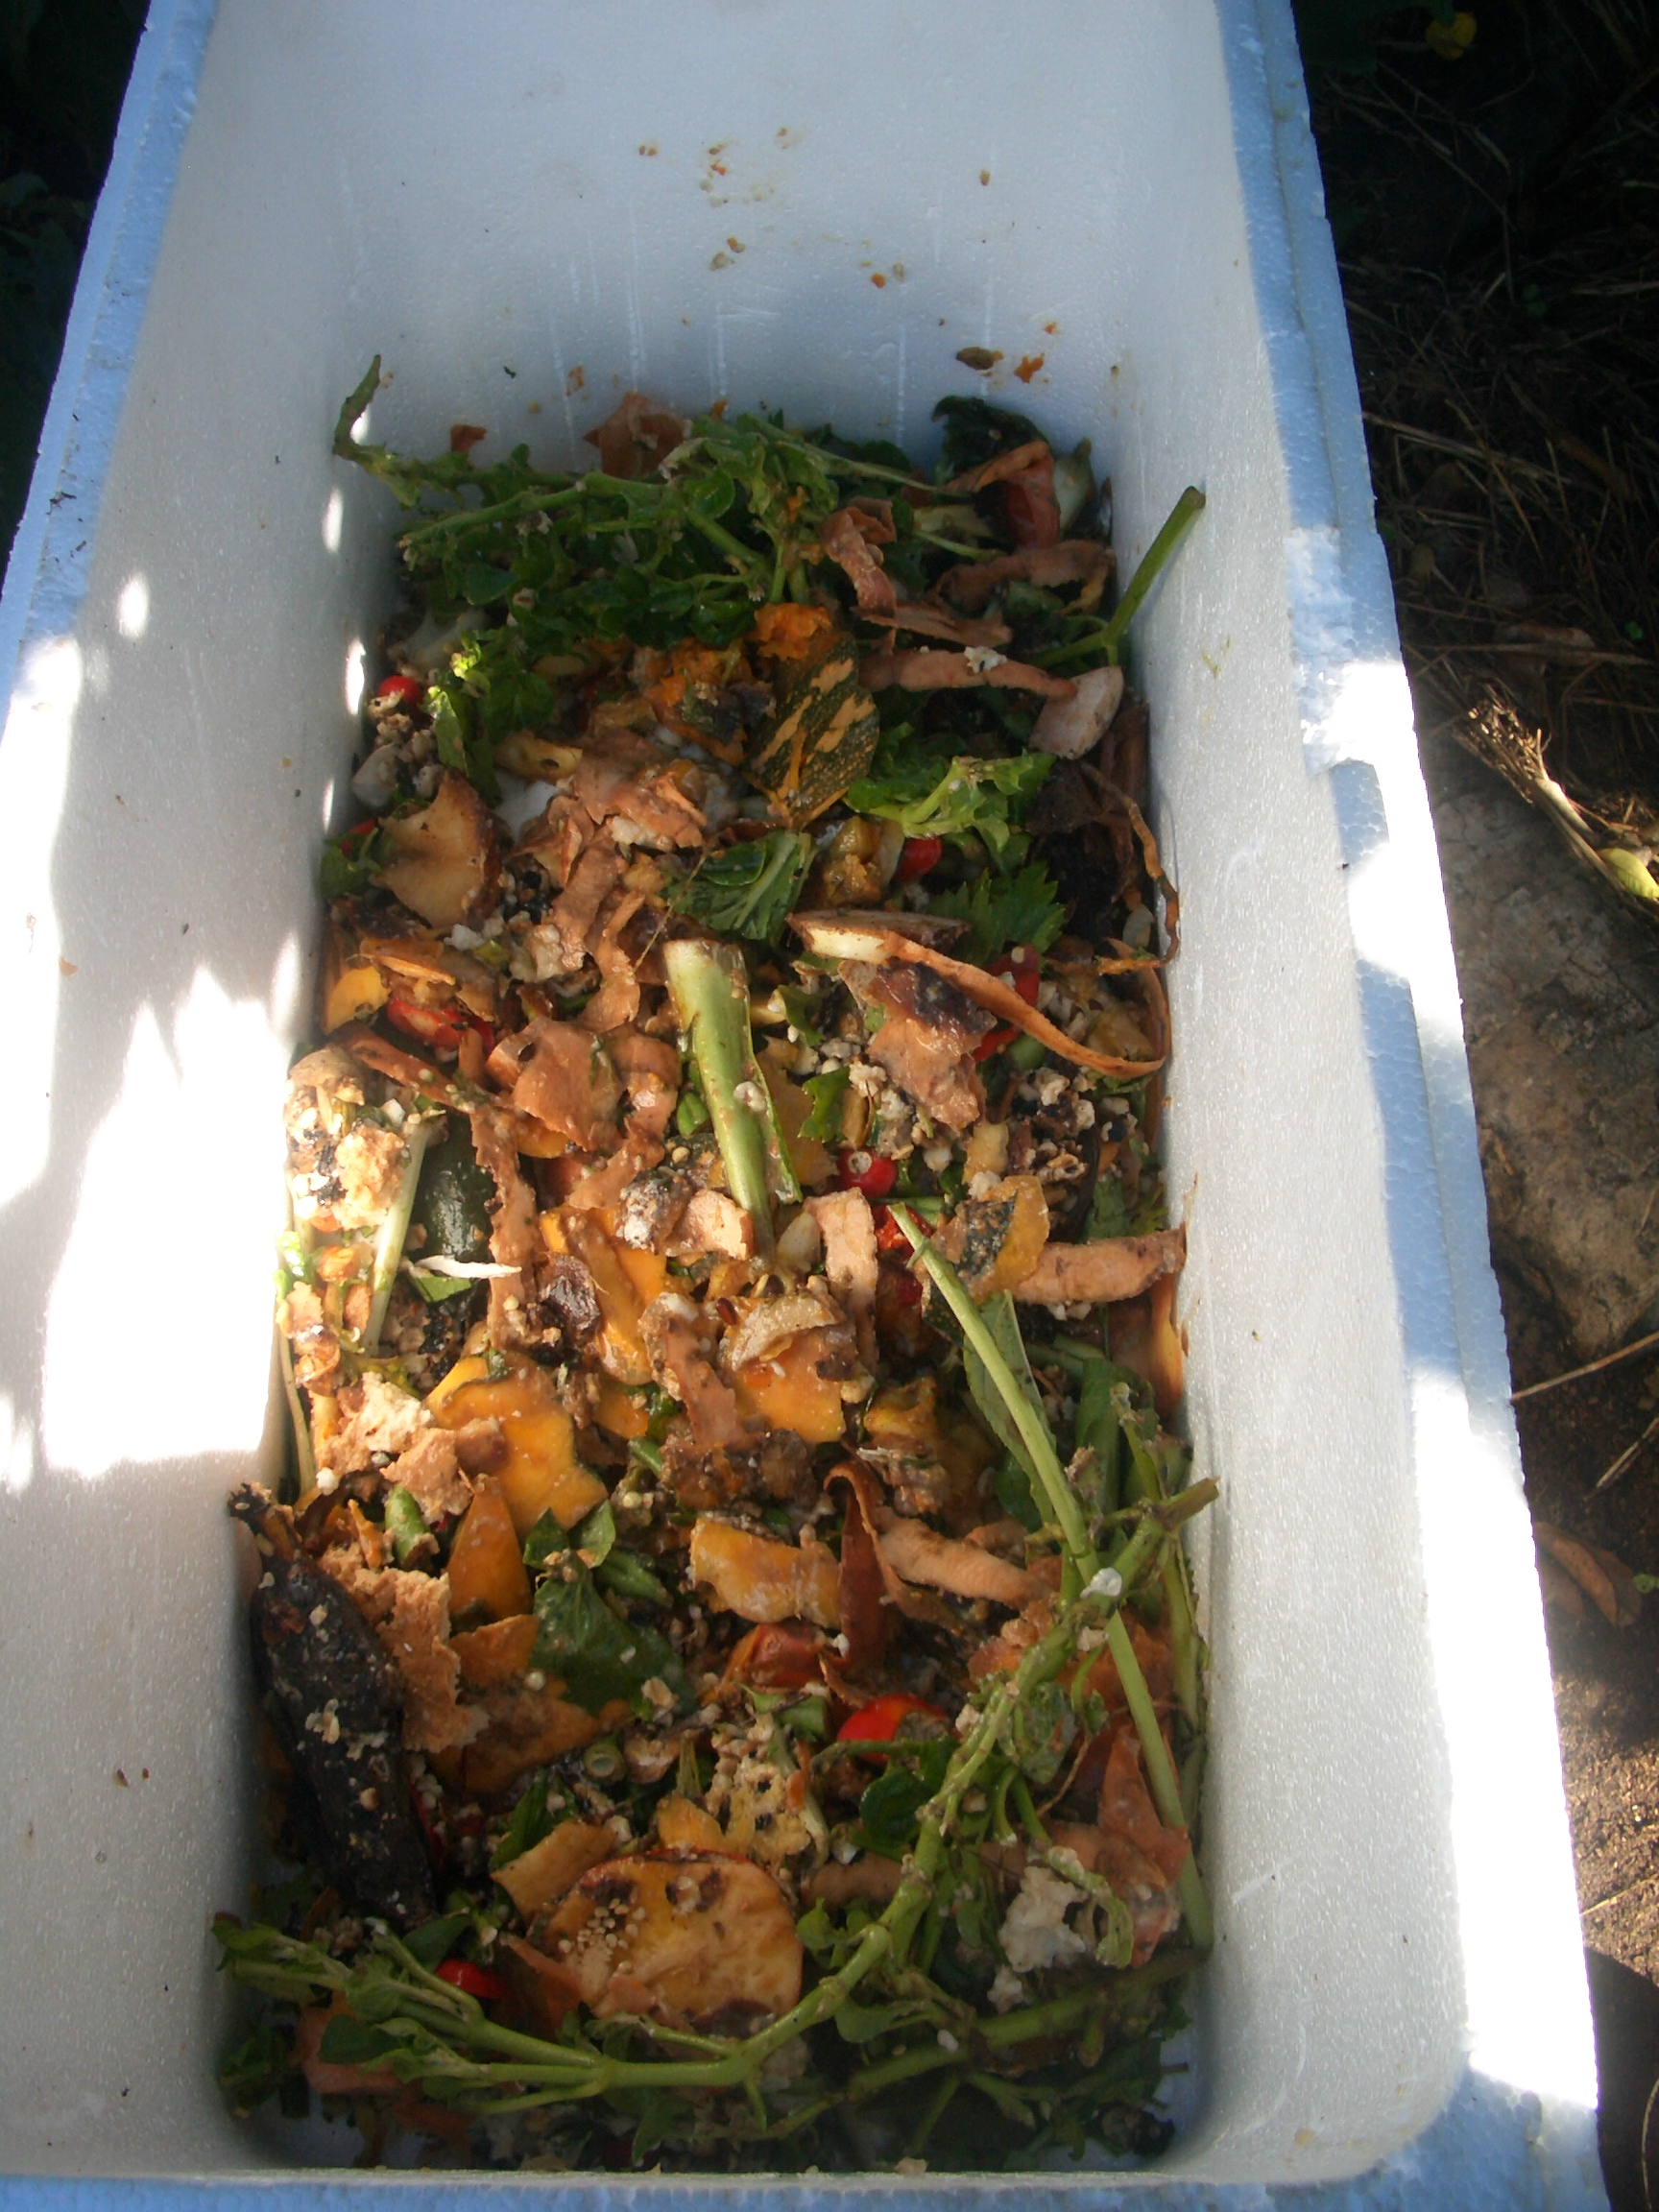 Permaculture And Food Forest Gardens Native Plant Talk: Permaculture Urban: A Simple Worm Farm